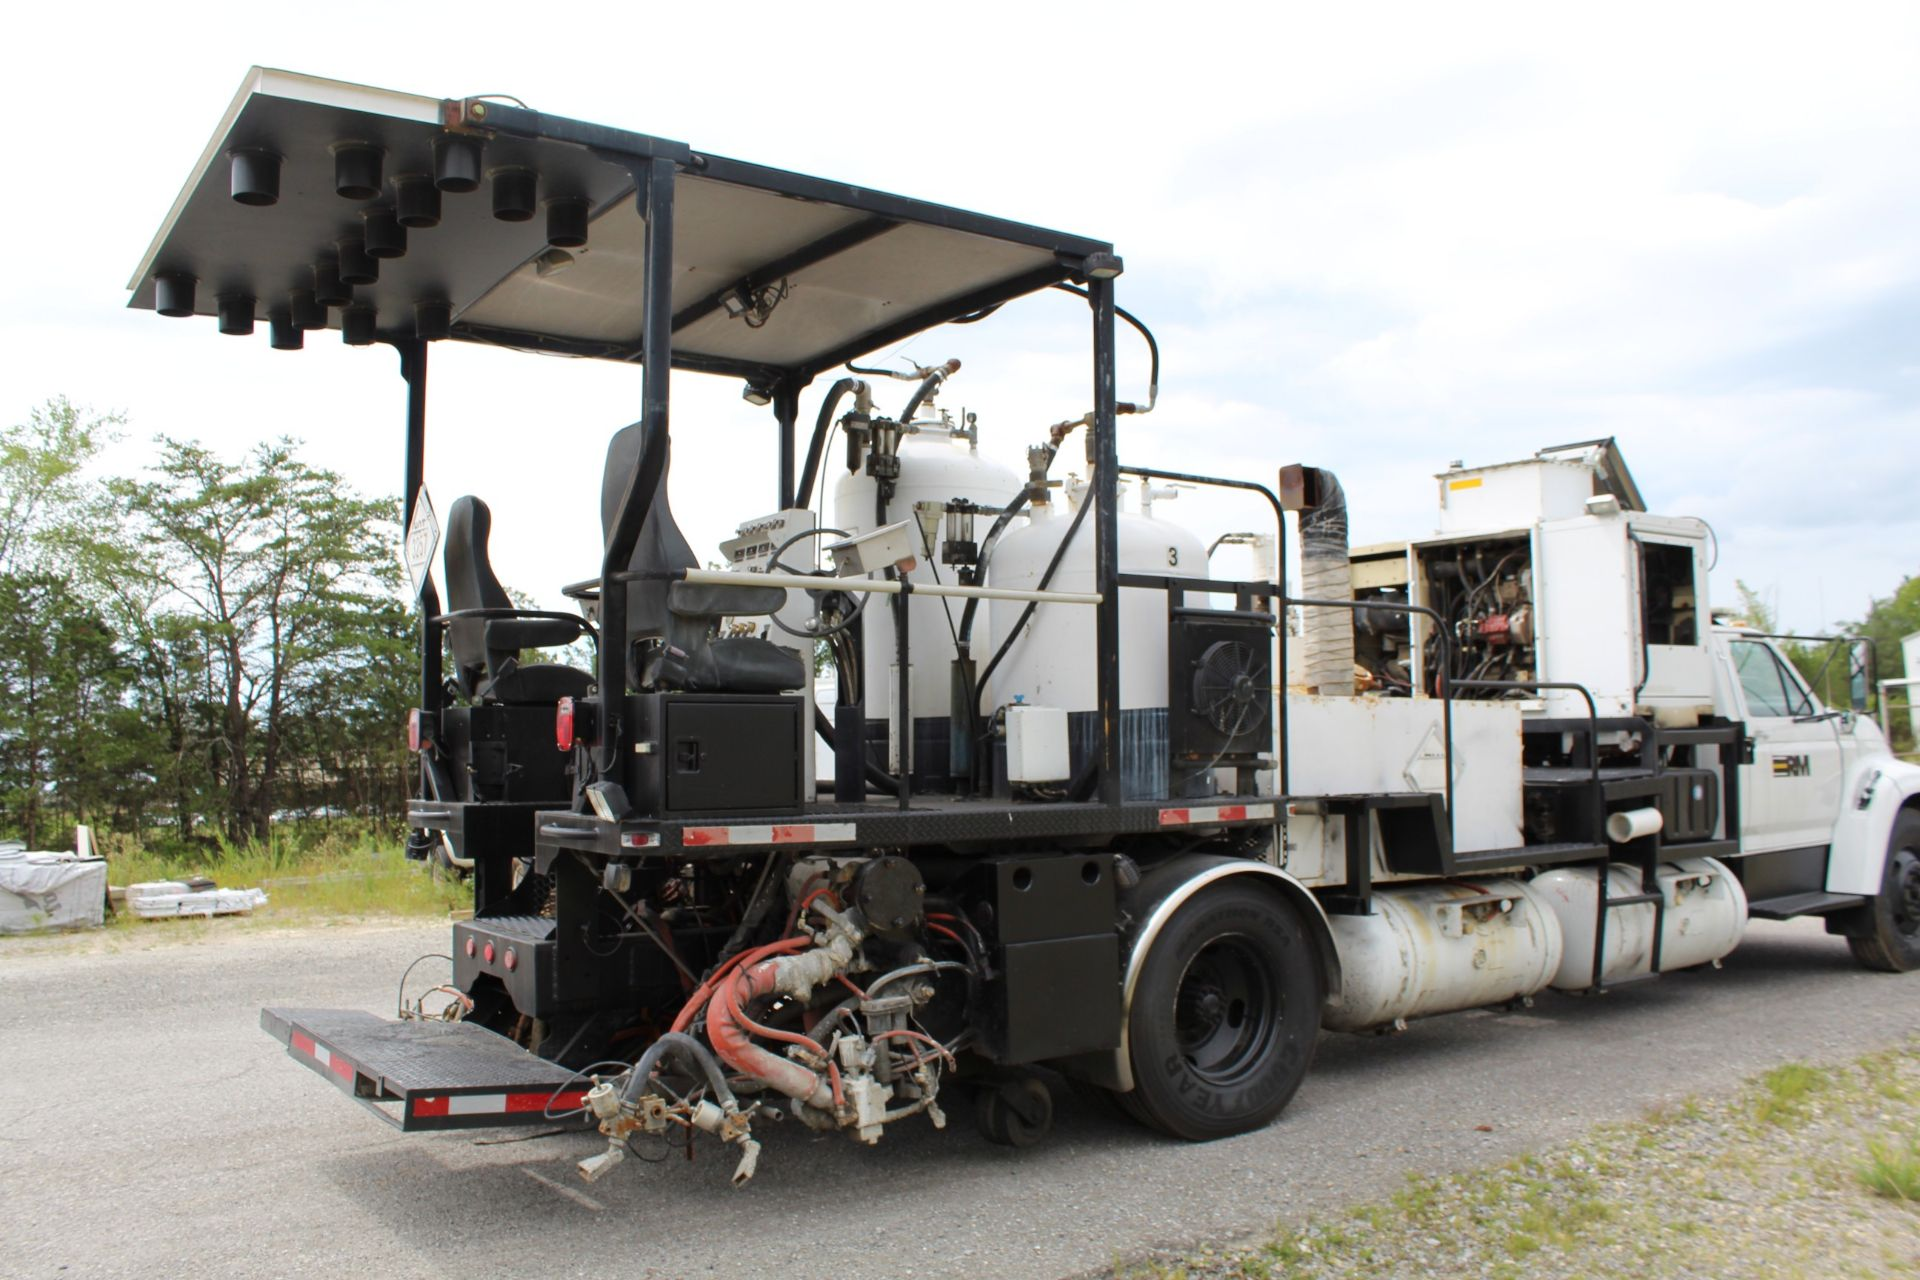 Lot 2 - 2016 MRL 4000 PT Paint Striper, s/n 04404 mounted on 1995 Ford F800 VIN 1FDWF80C1SVA44334